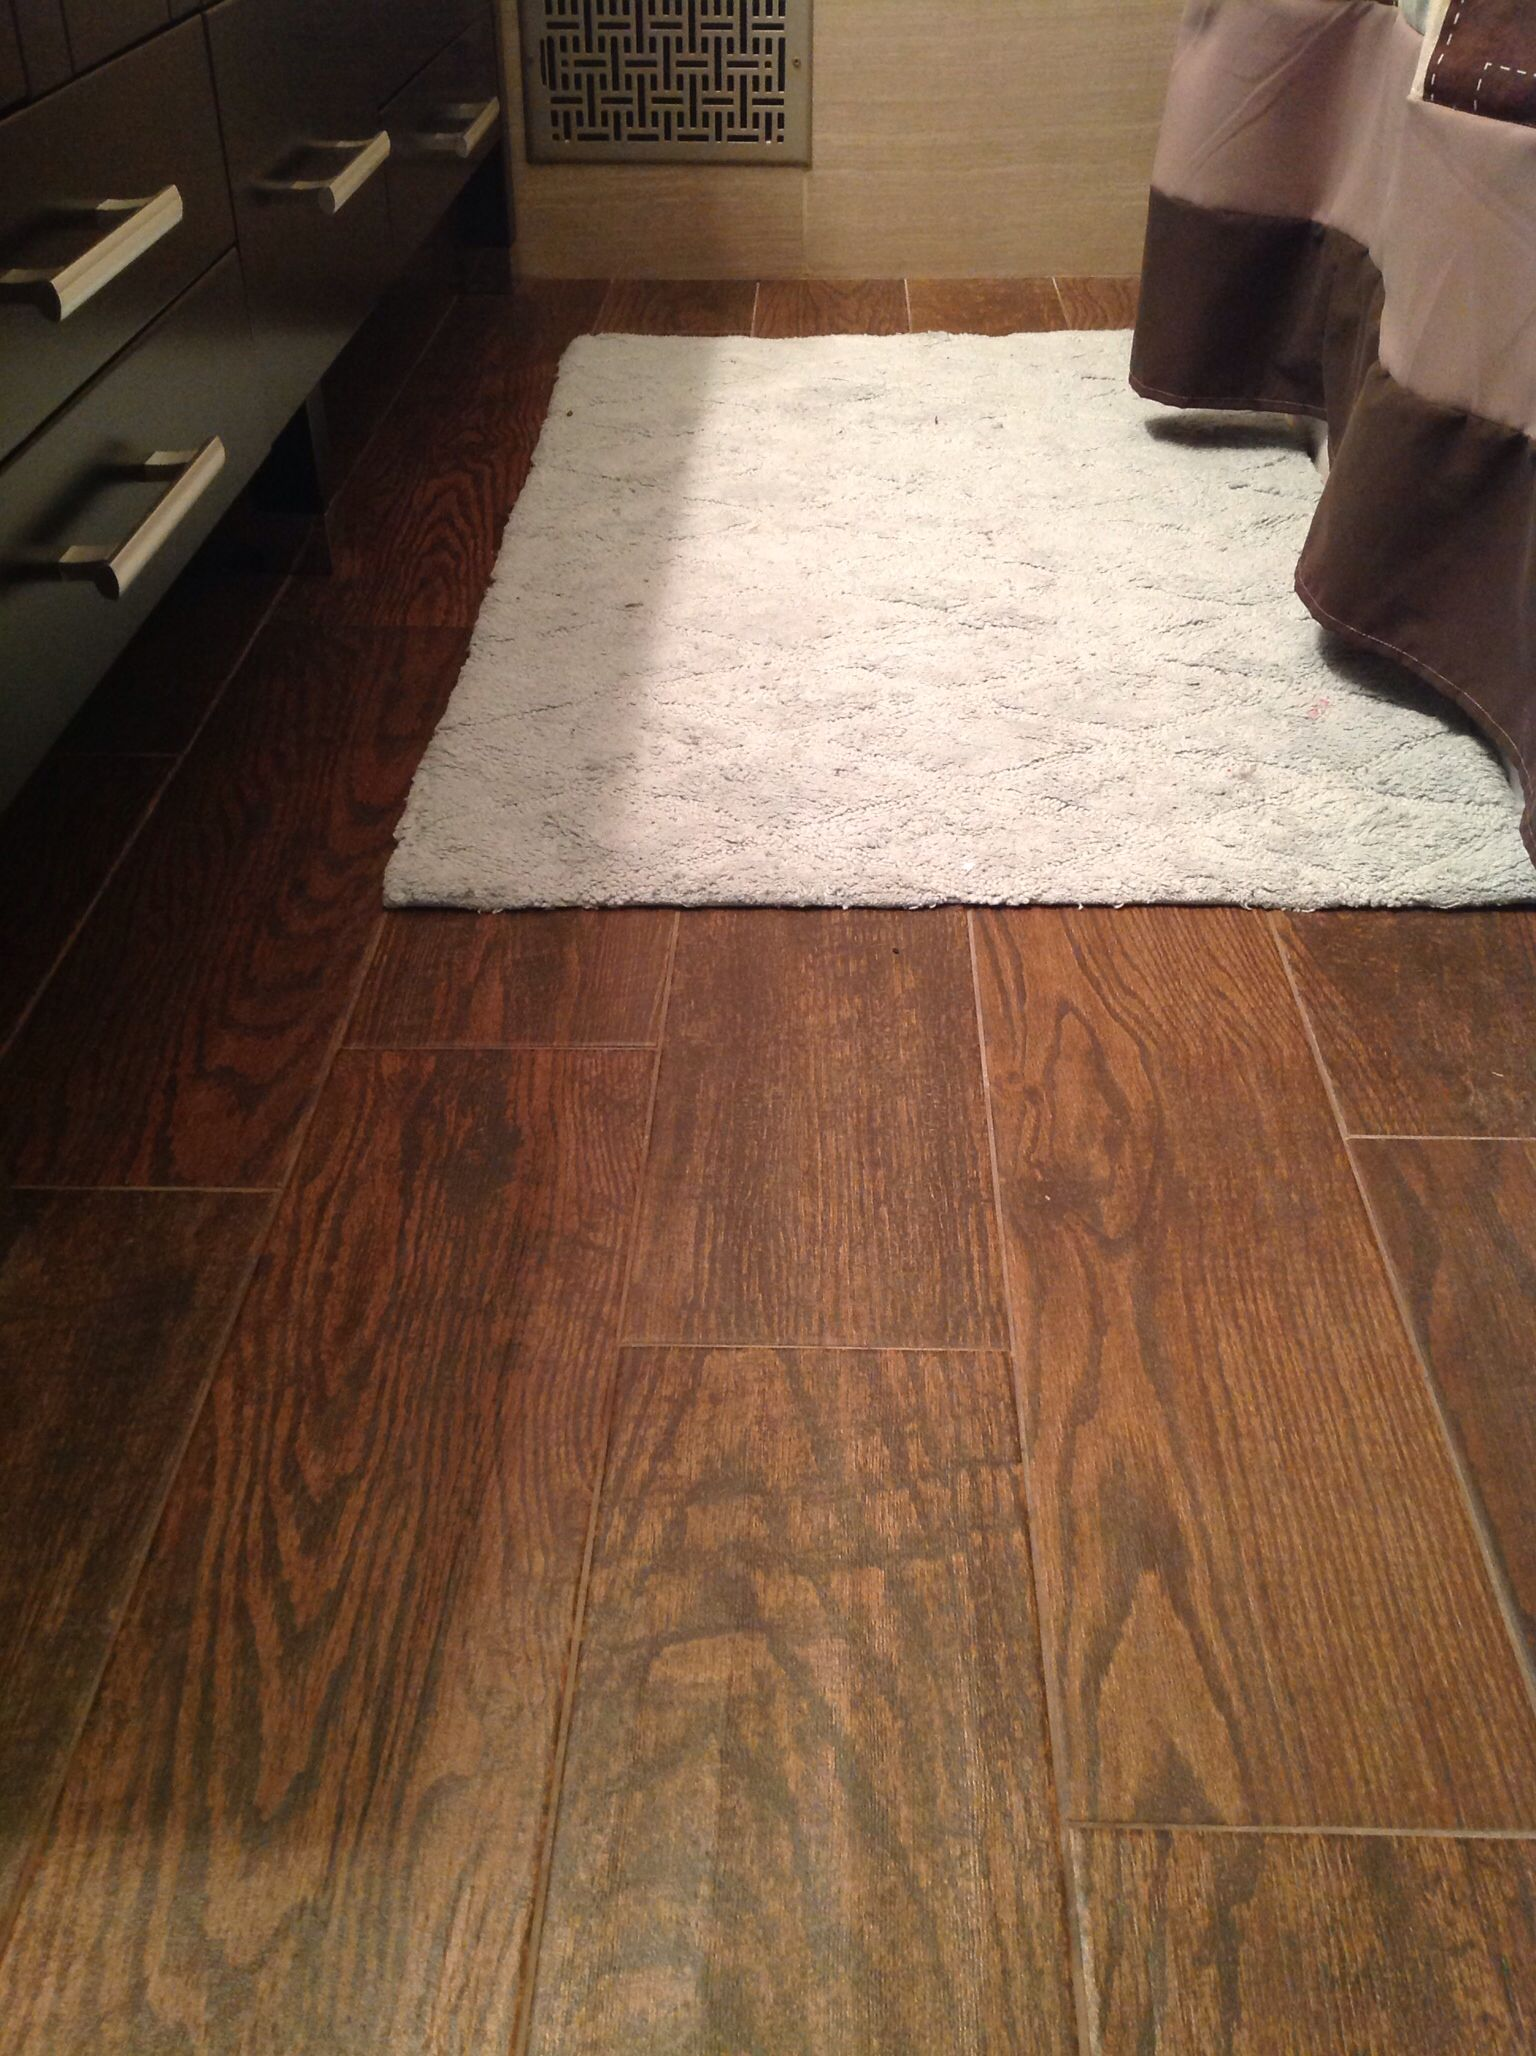 Tile flooring that looks like hardwood. You can find it at Lowe's and Home  Depot - Home Depot Porcelain Tile Looks Like Wood -- For The Future